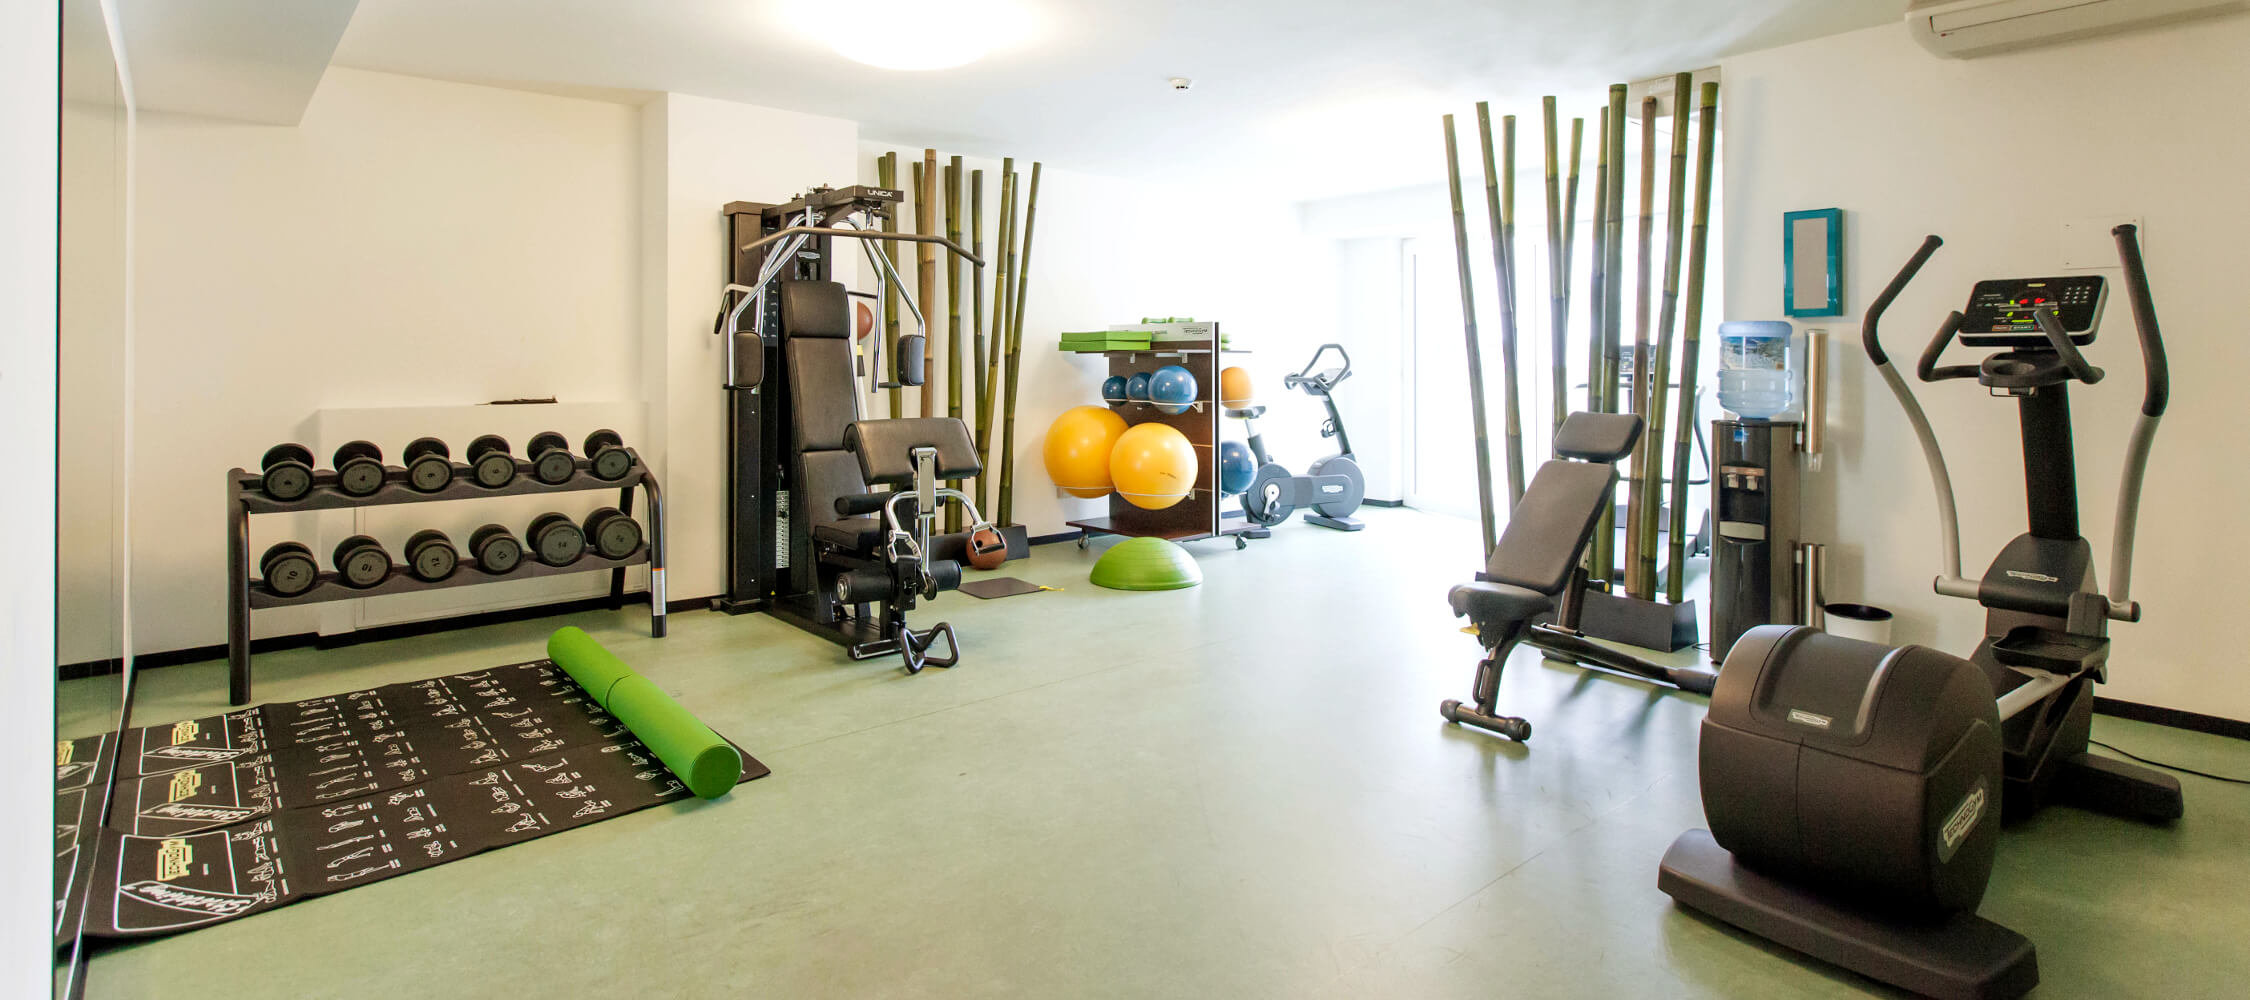 City_Hotel_Merano_Spa_Fitness_Oyster_Marco_Pompeo_16968943_150-2250x1000